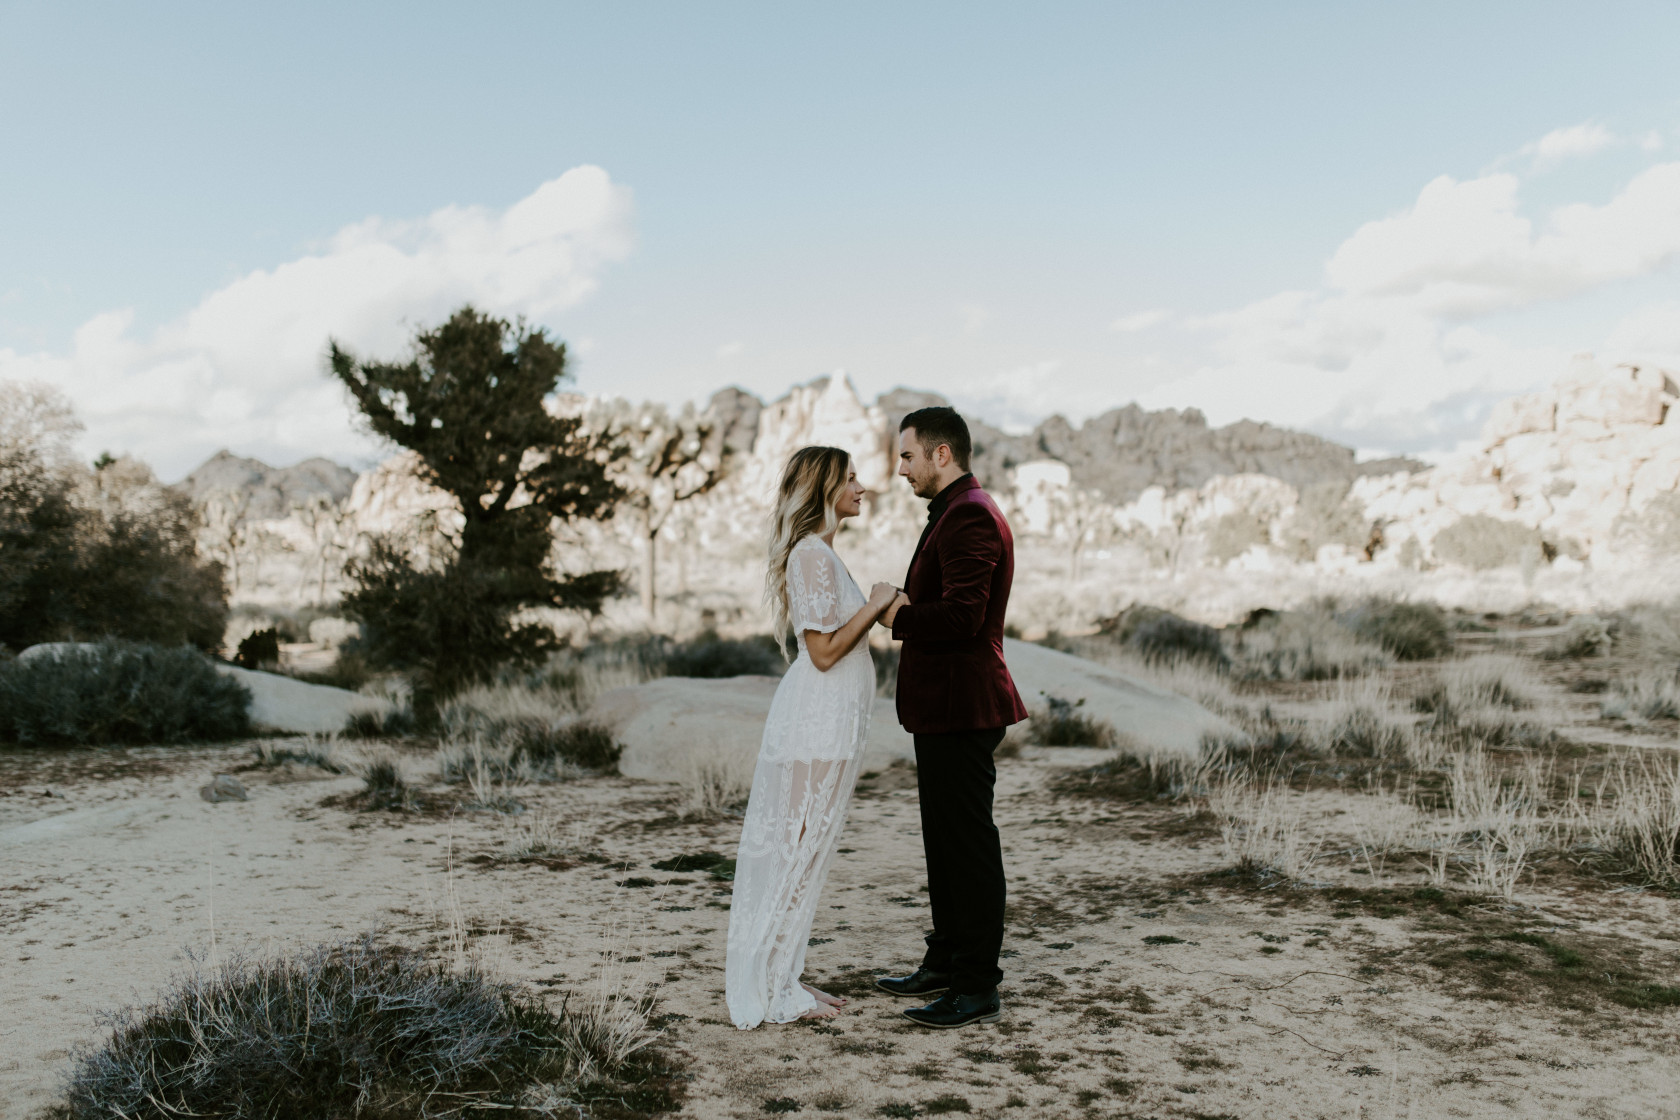 Alyssa and Jeremy face each other on the sand of Joshua Tree National Park Joshua Tree National Park, CA Elopement wedding photography at Joshua Tree National Park by Sienna Plus Josh.